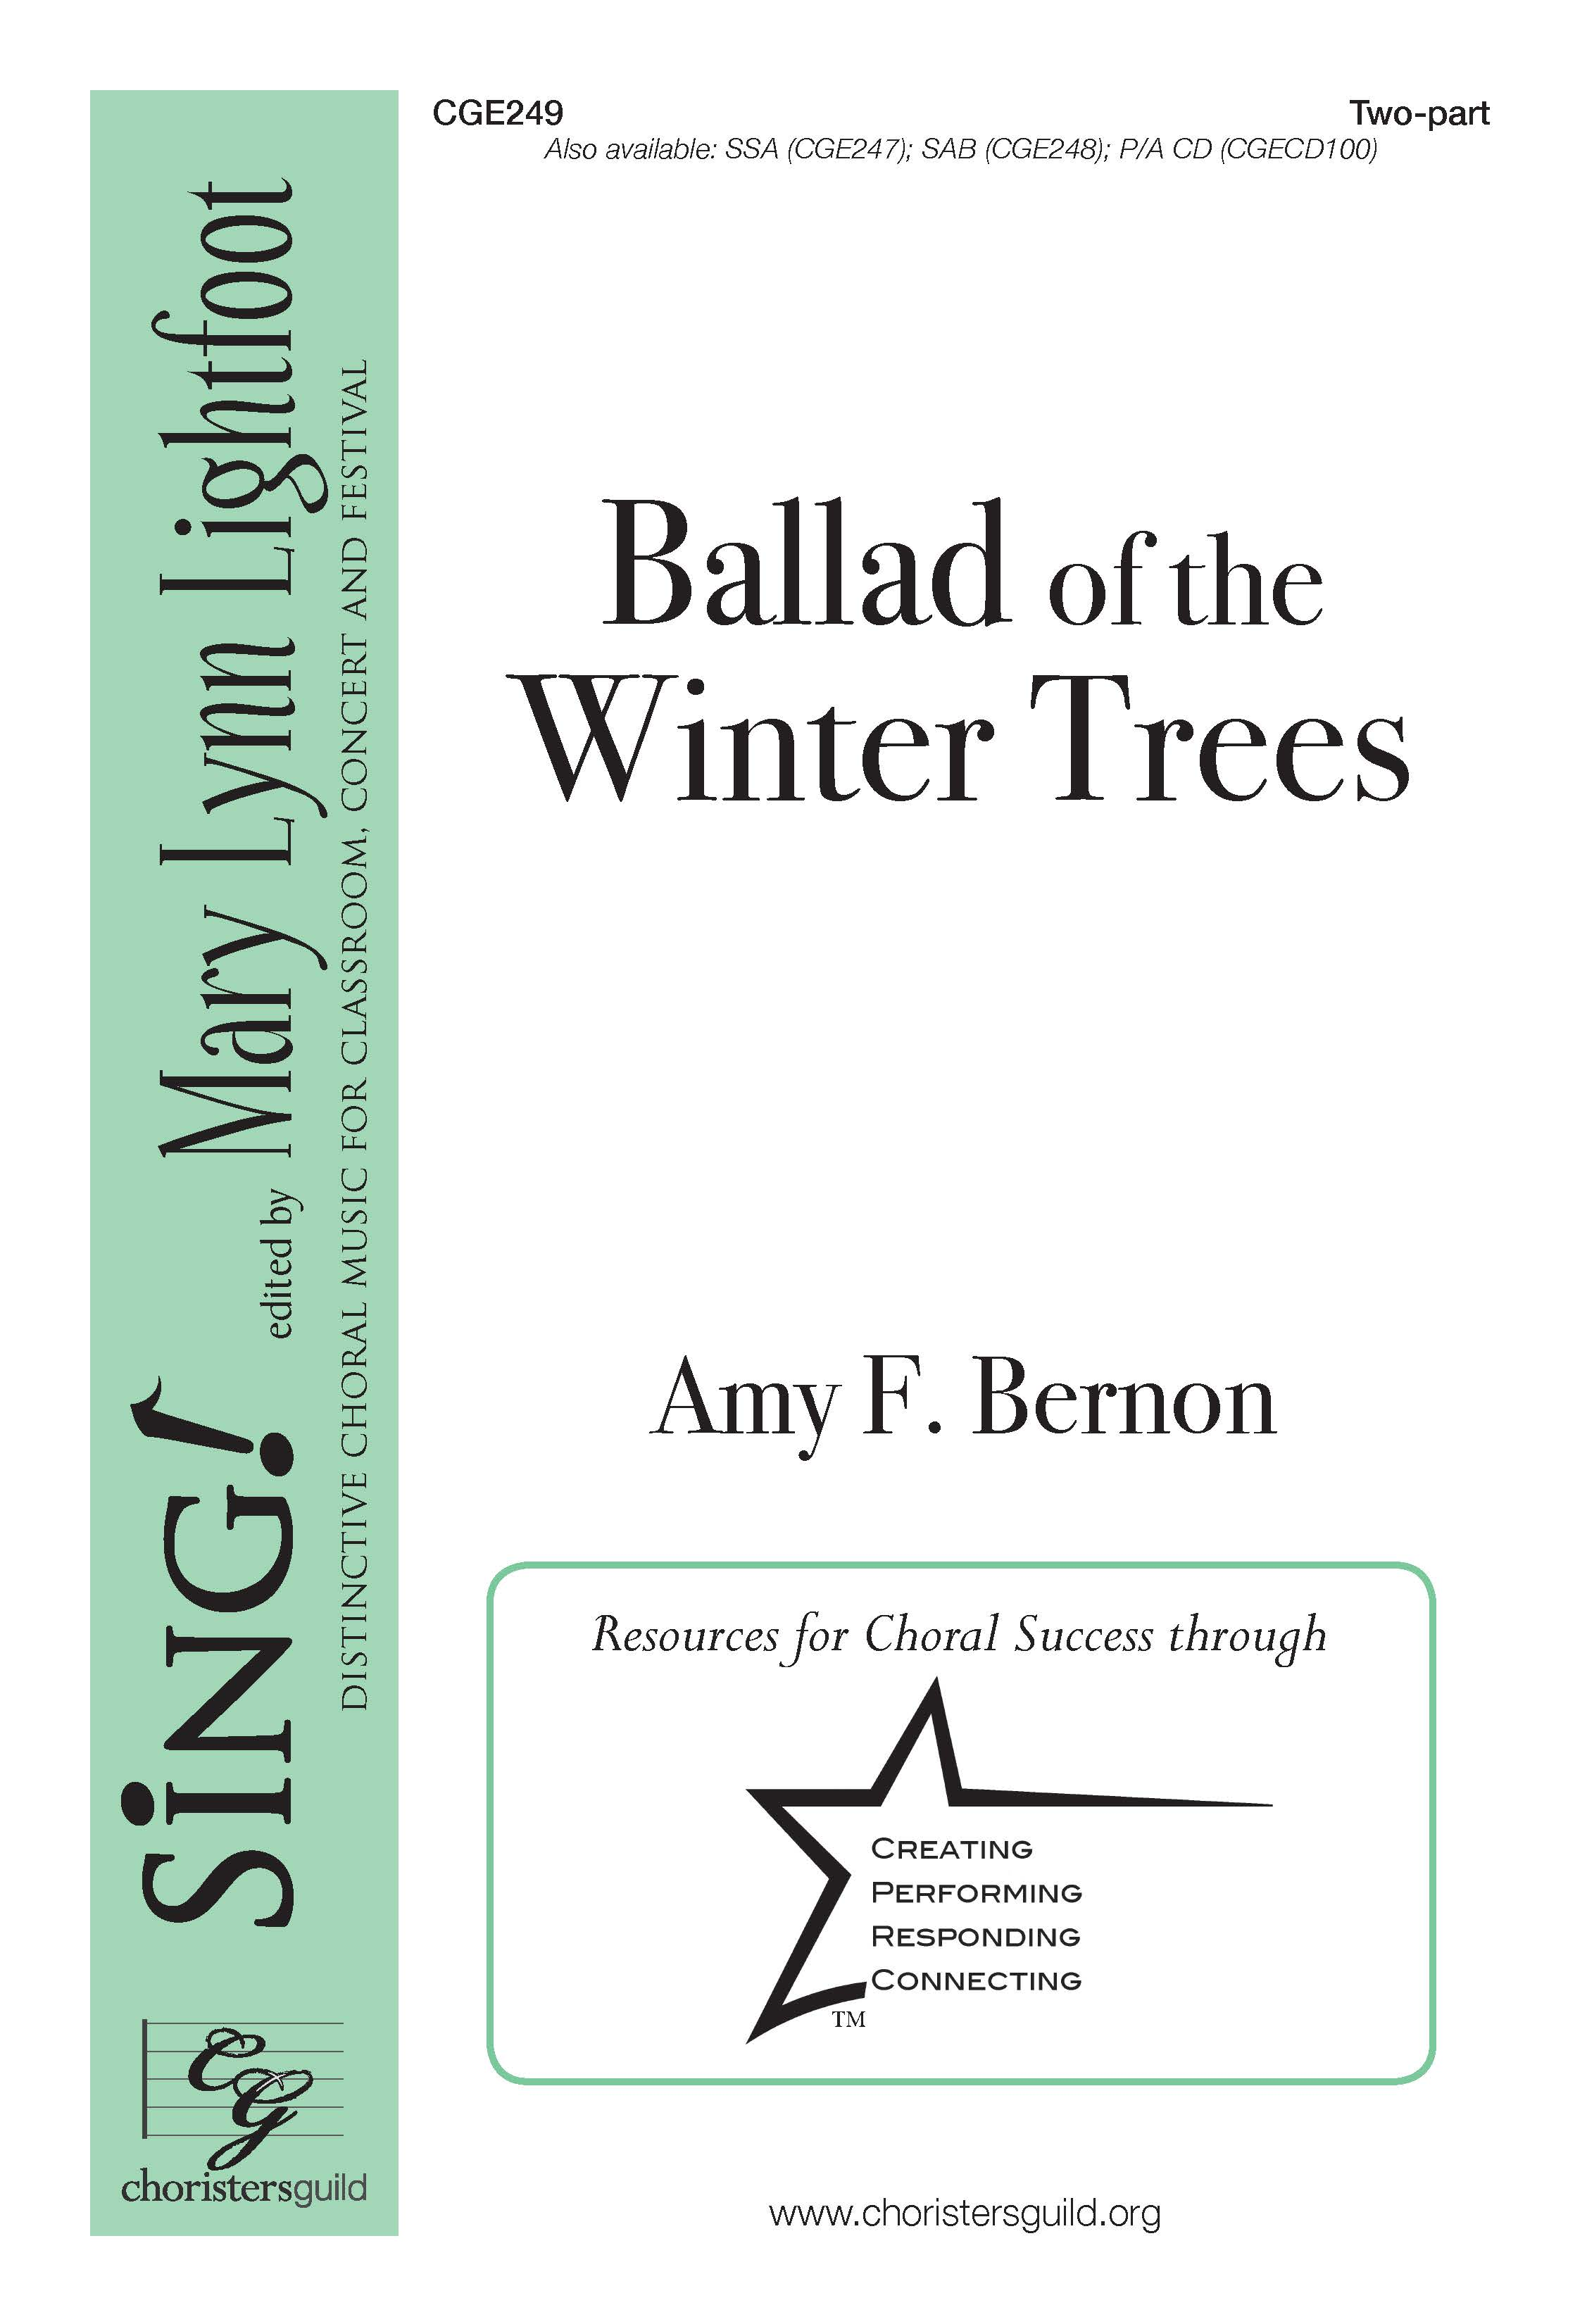 Ballad of the Winter Trees Two-part